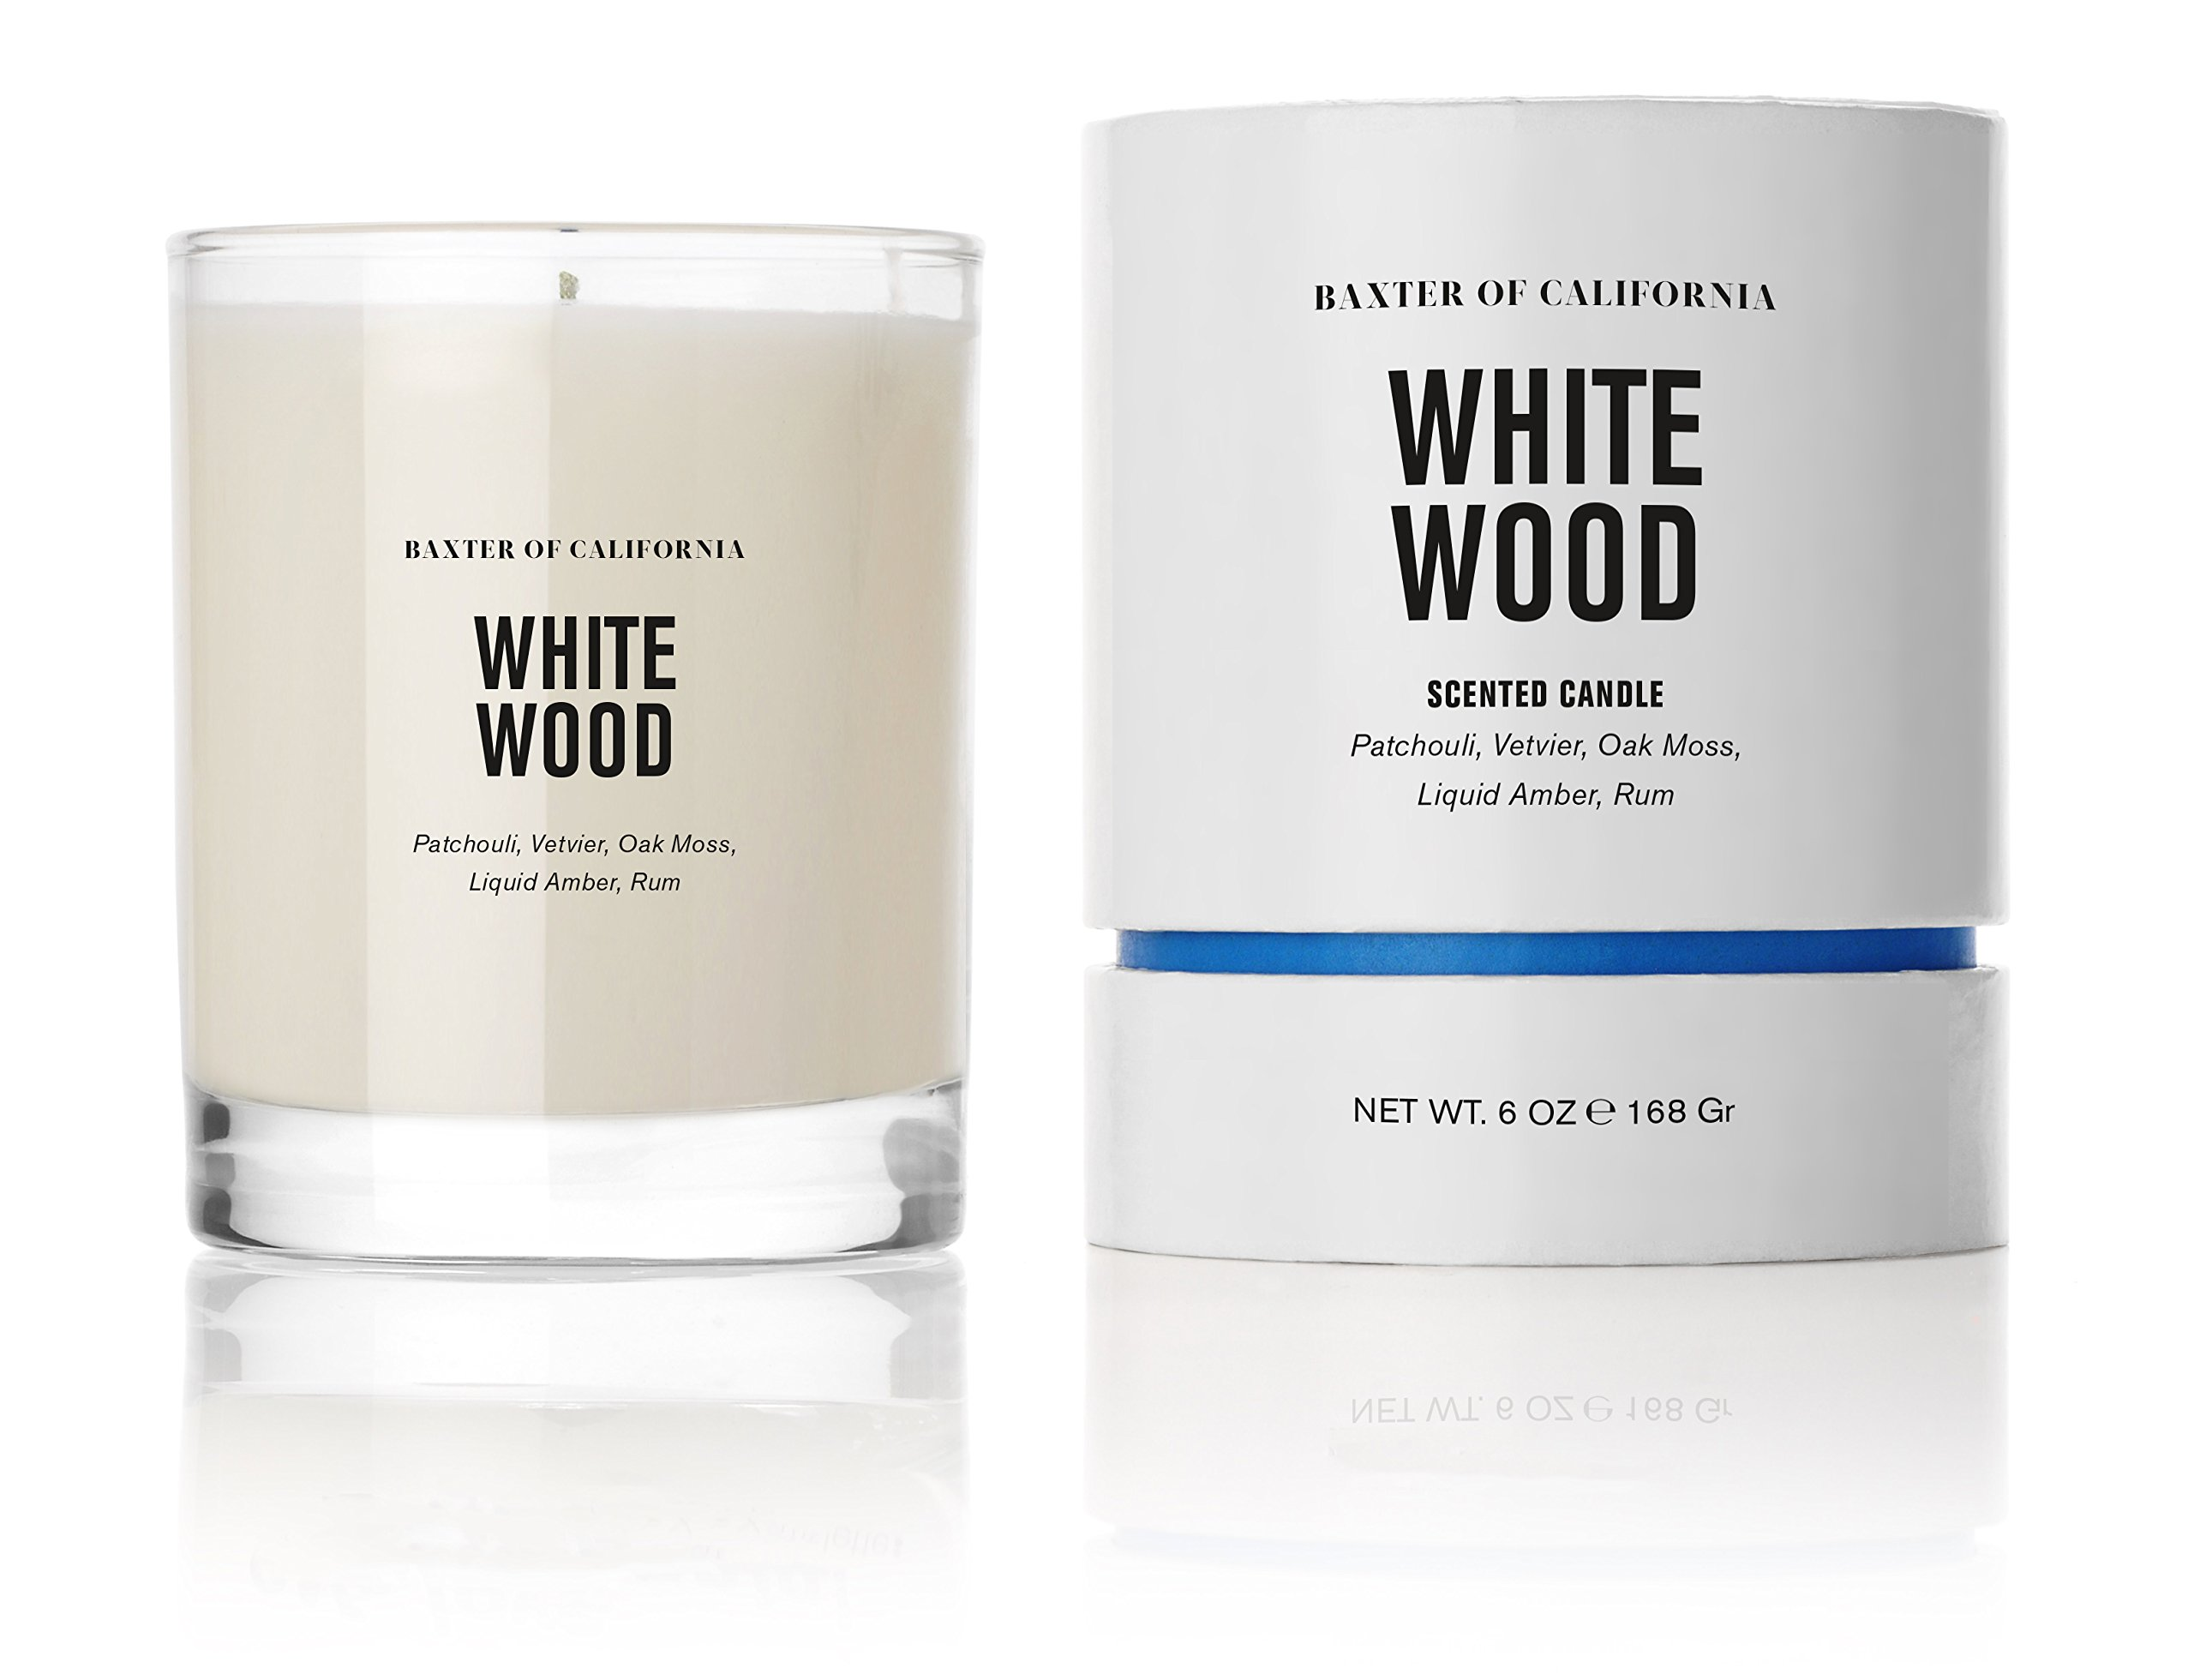 Baxter of California Candle, White Wood, 6 oz. by Baxter of California